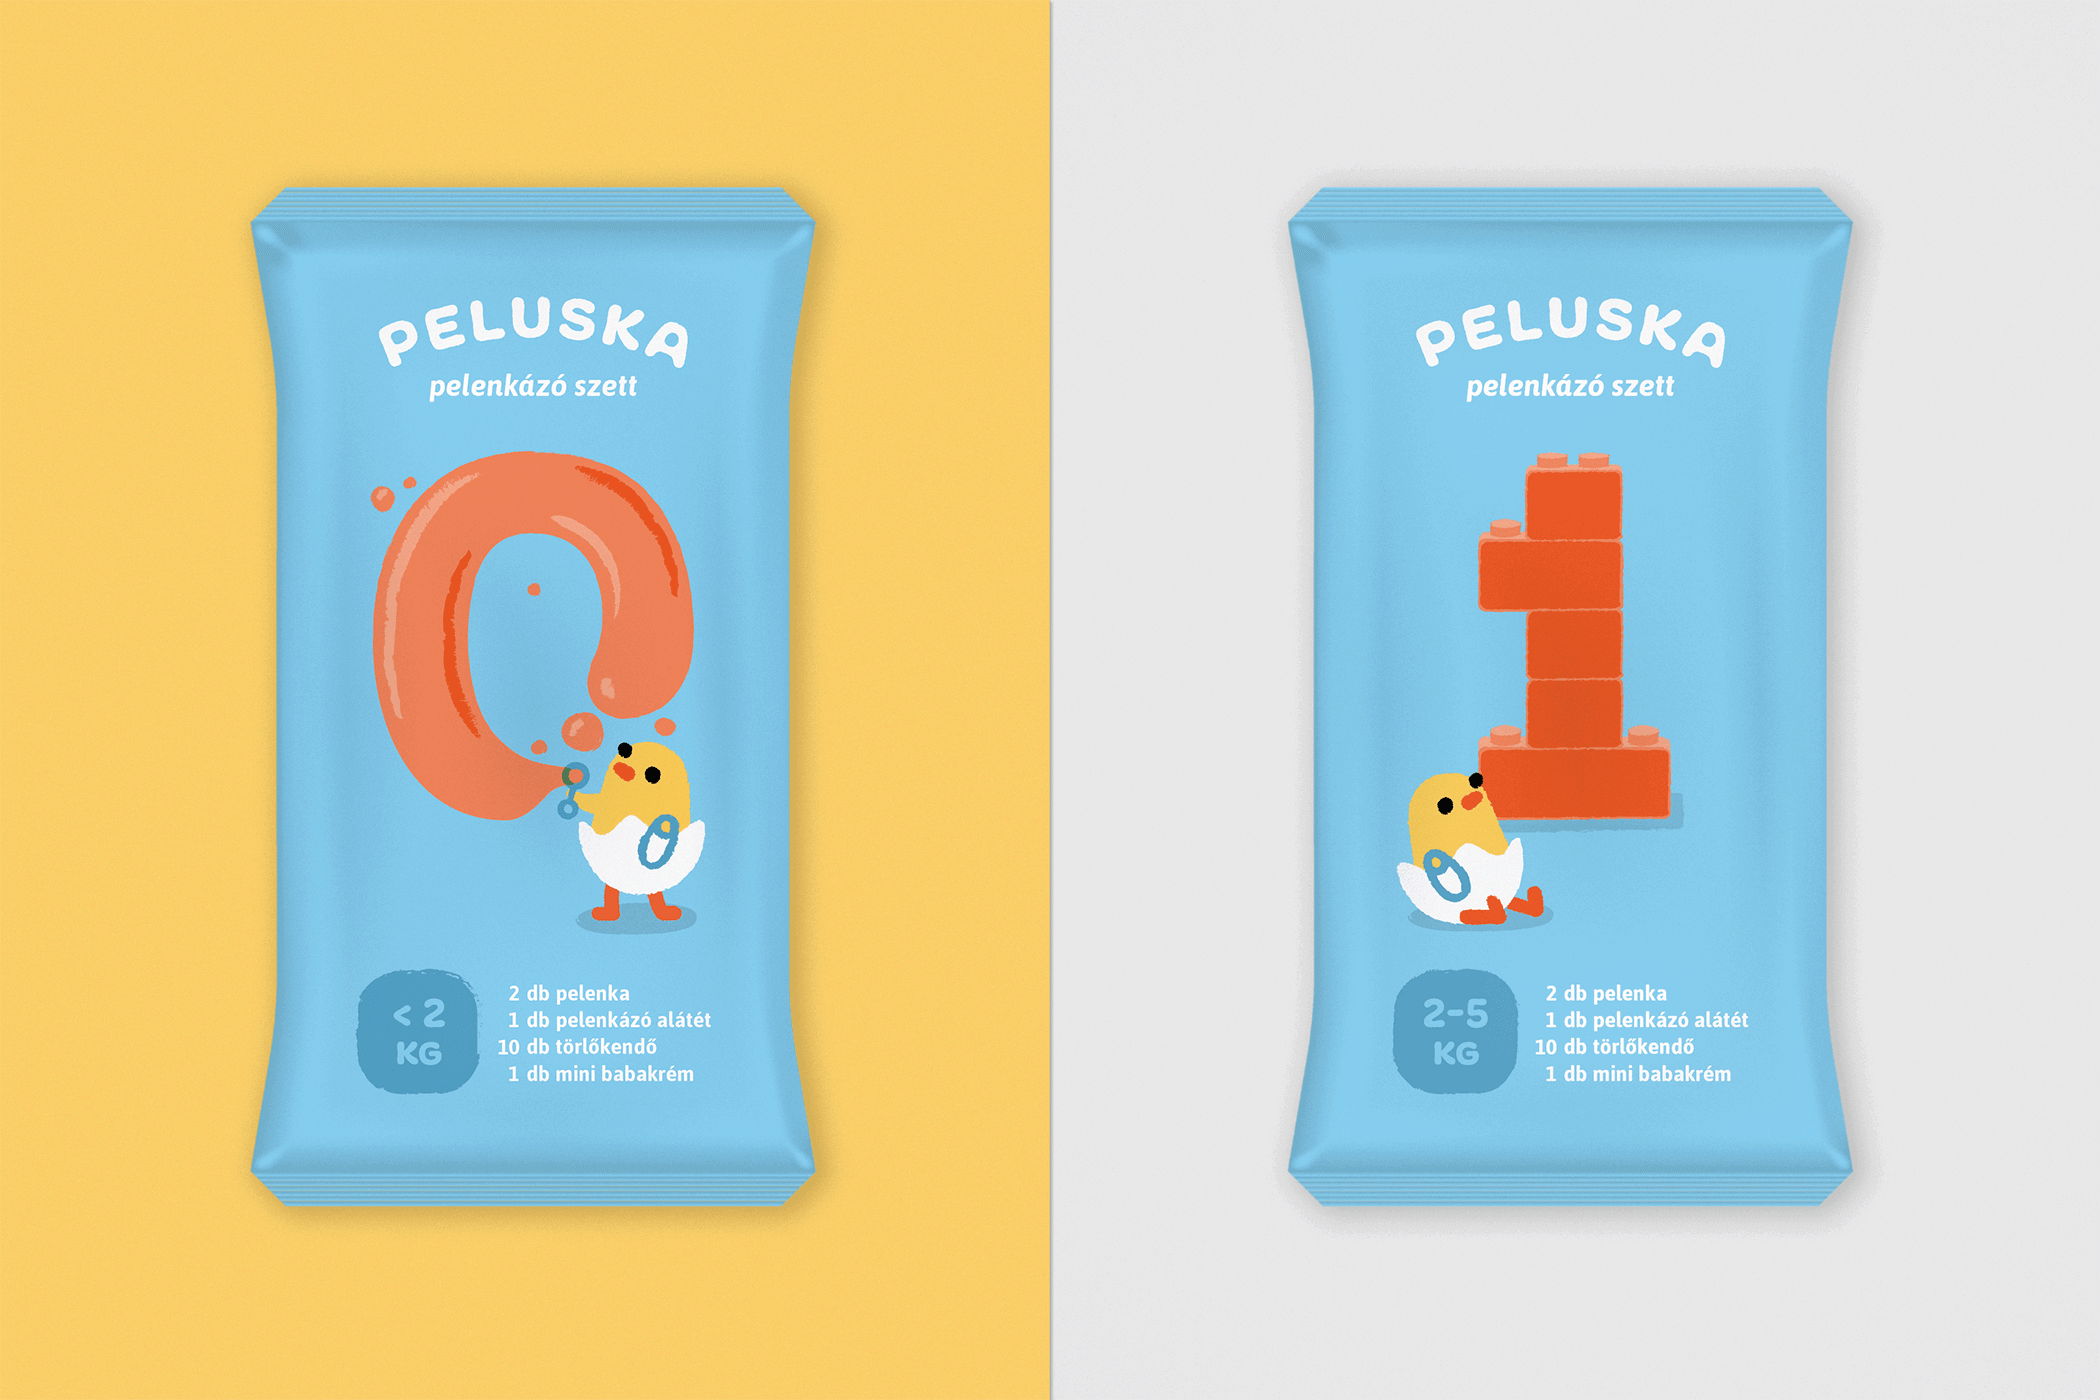 Diaper packaging for 0 and 1